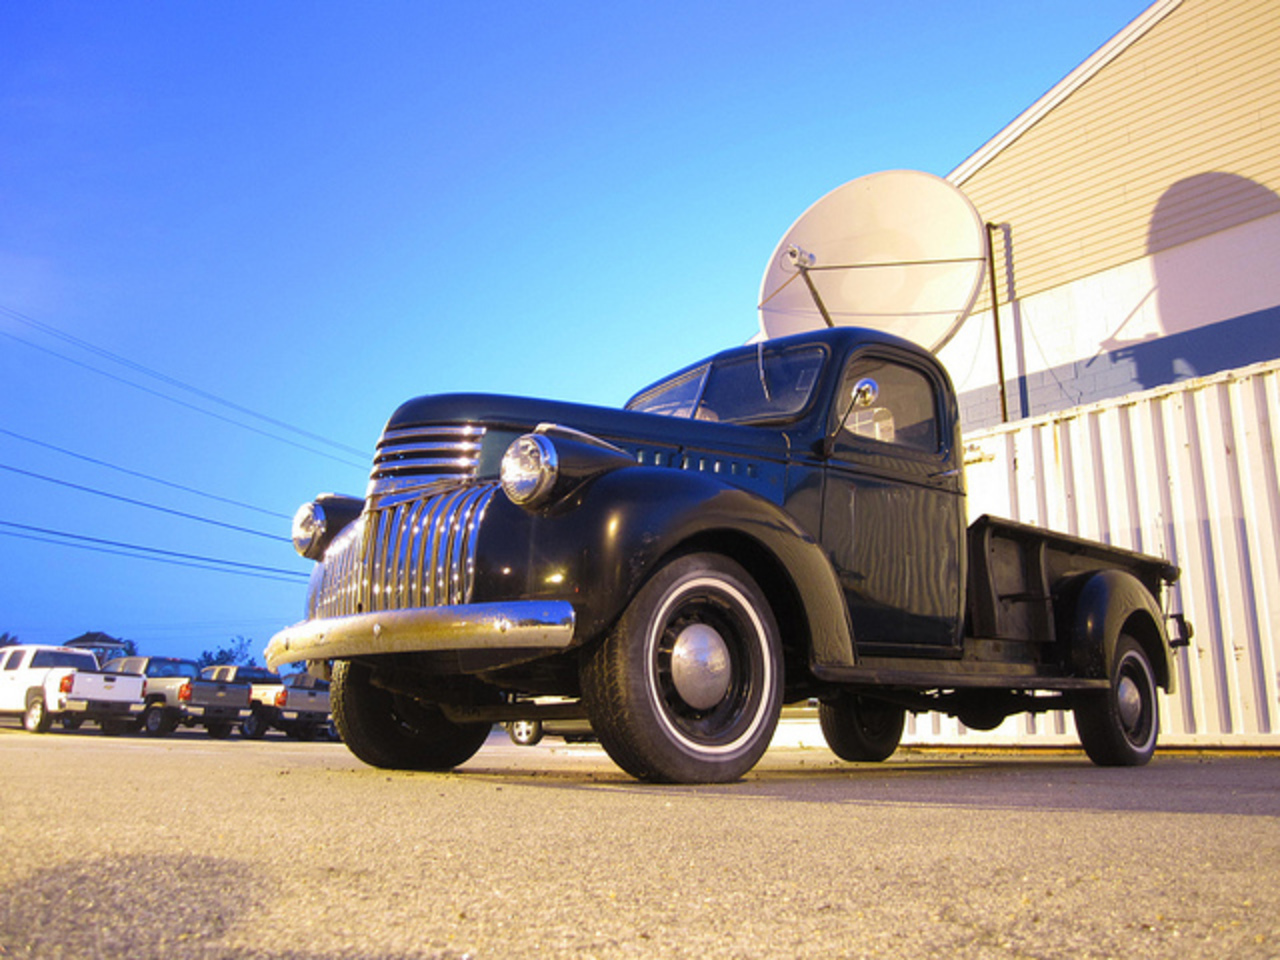 Flickr: The 1896 - 1990 Vintage & Classic USA Vehicles Pool